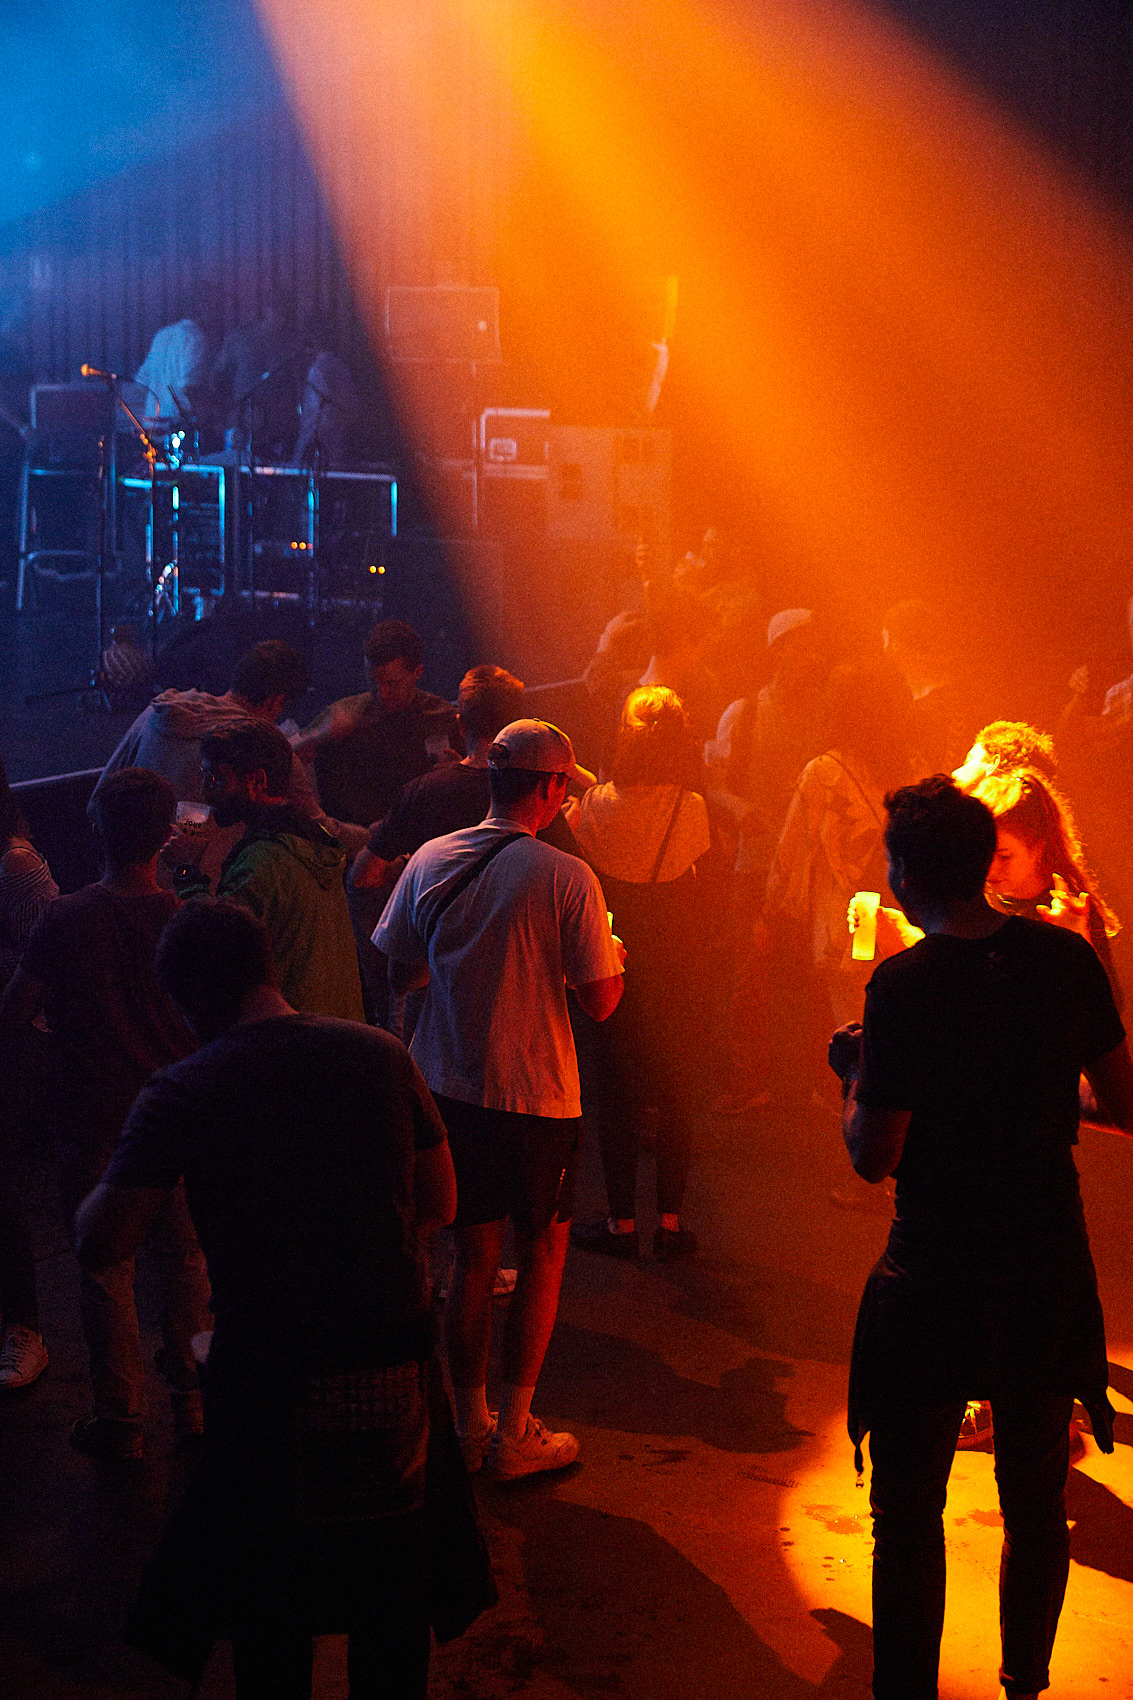 Concert Underground System at La Belle Électrique in Grenoble, France